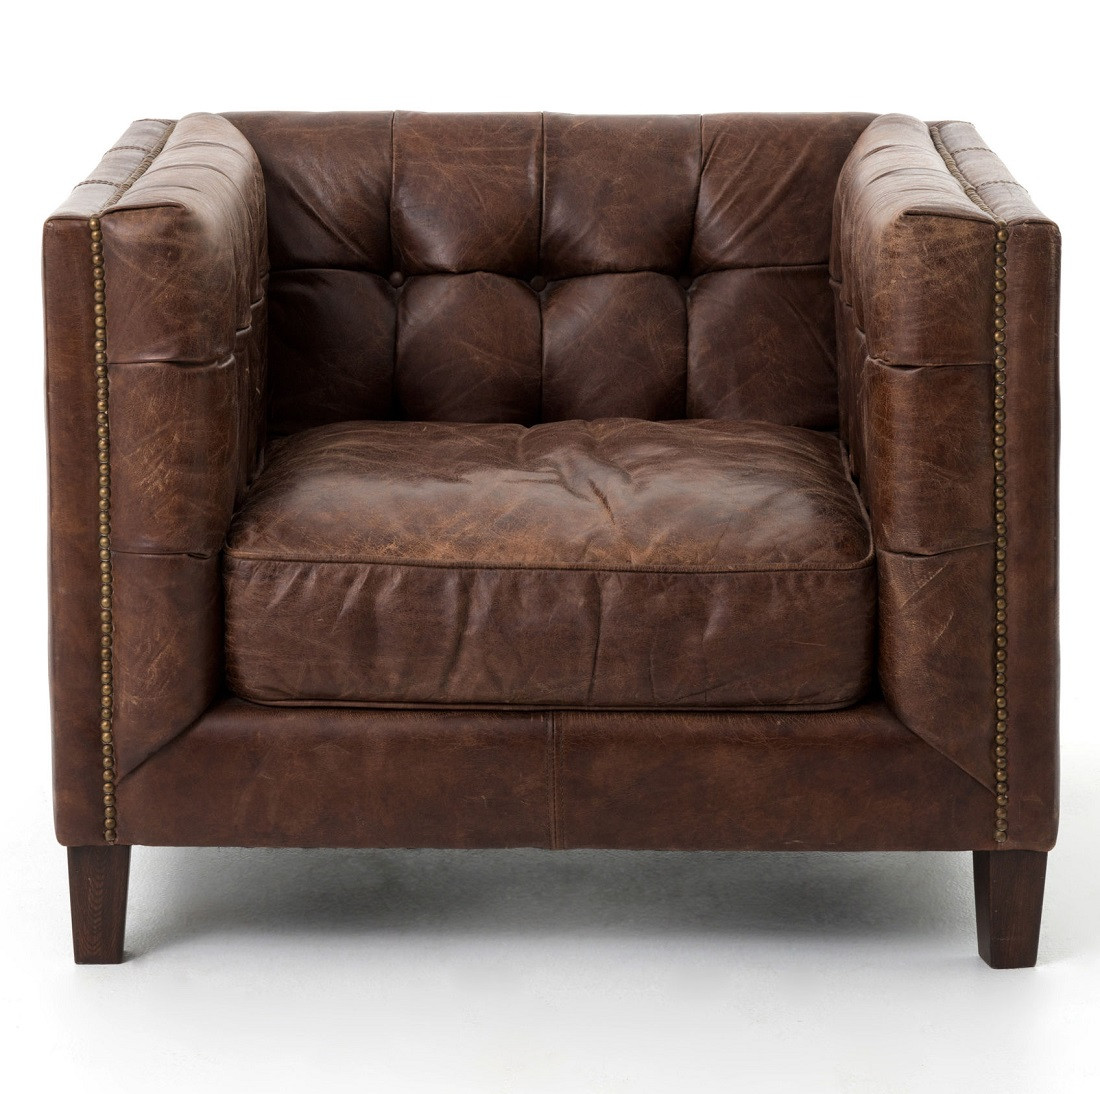 abbott vintage cigar tufted leather sofa plans to build a bed club chair zin home